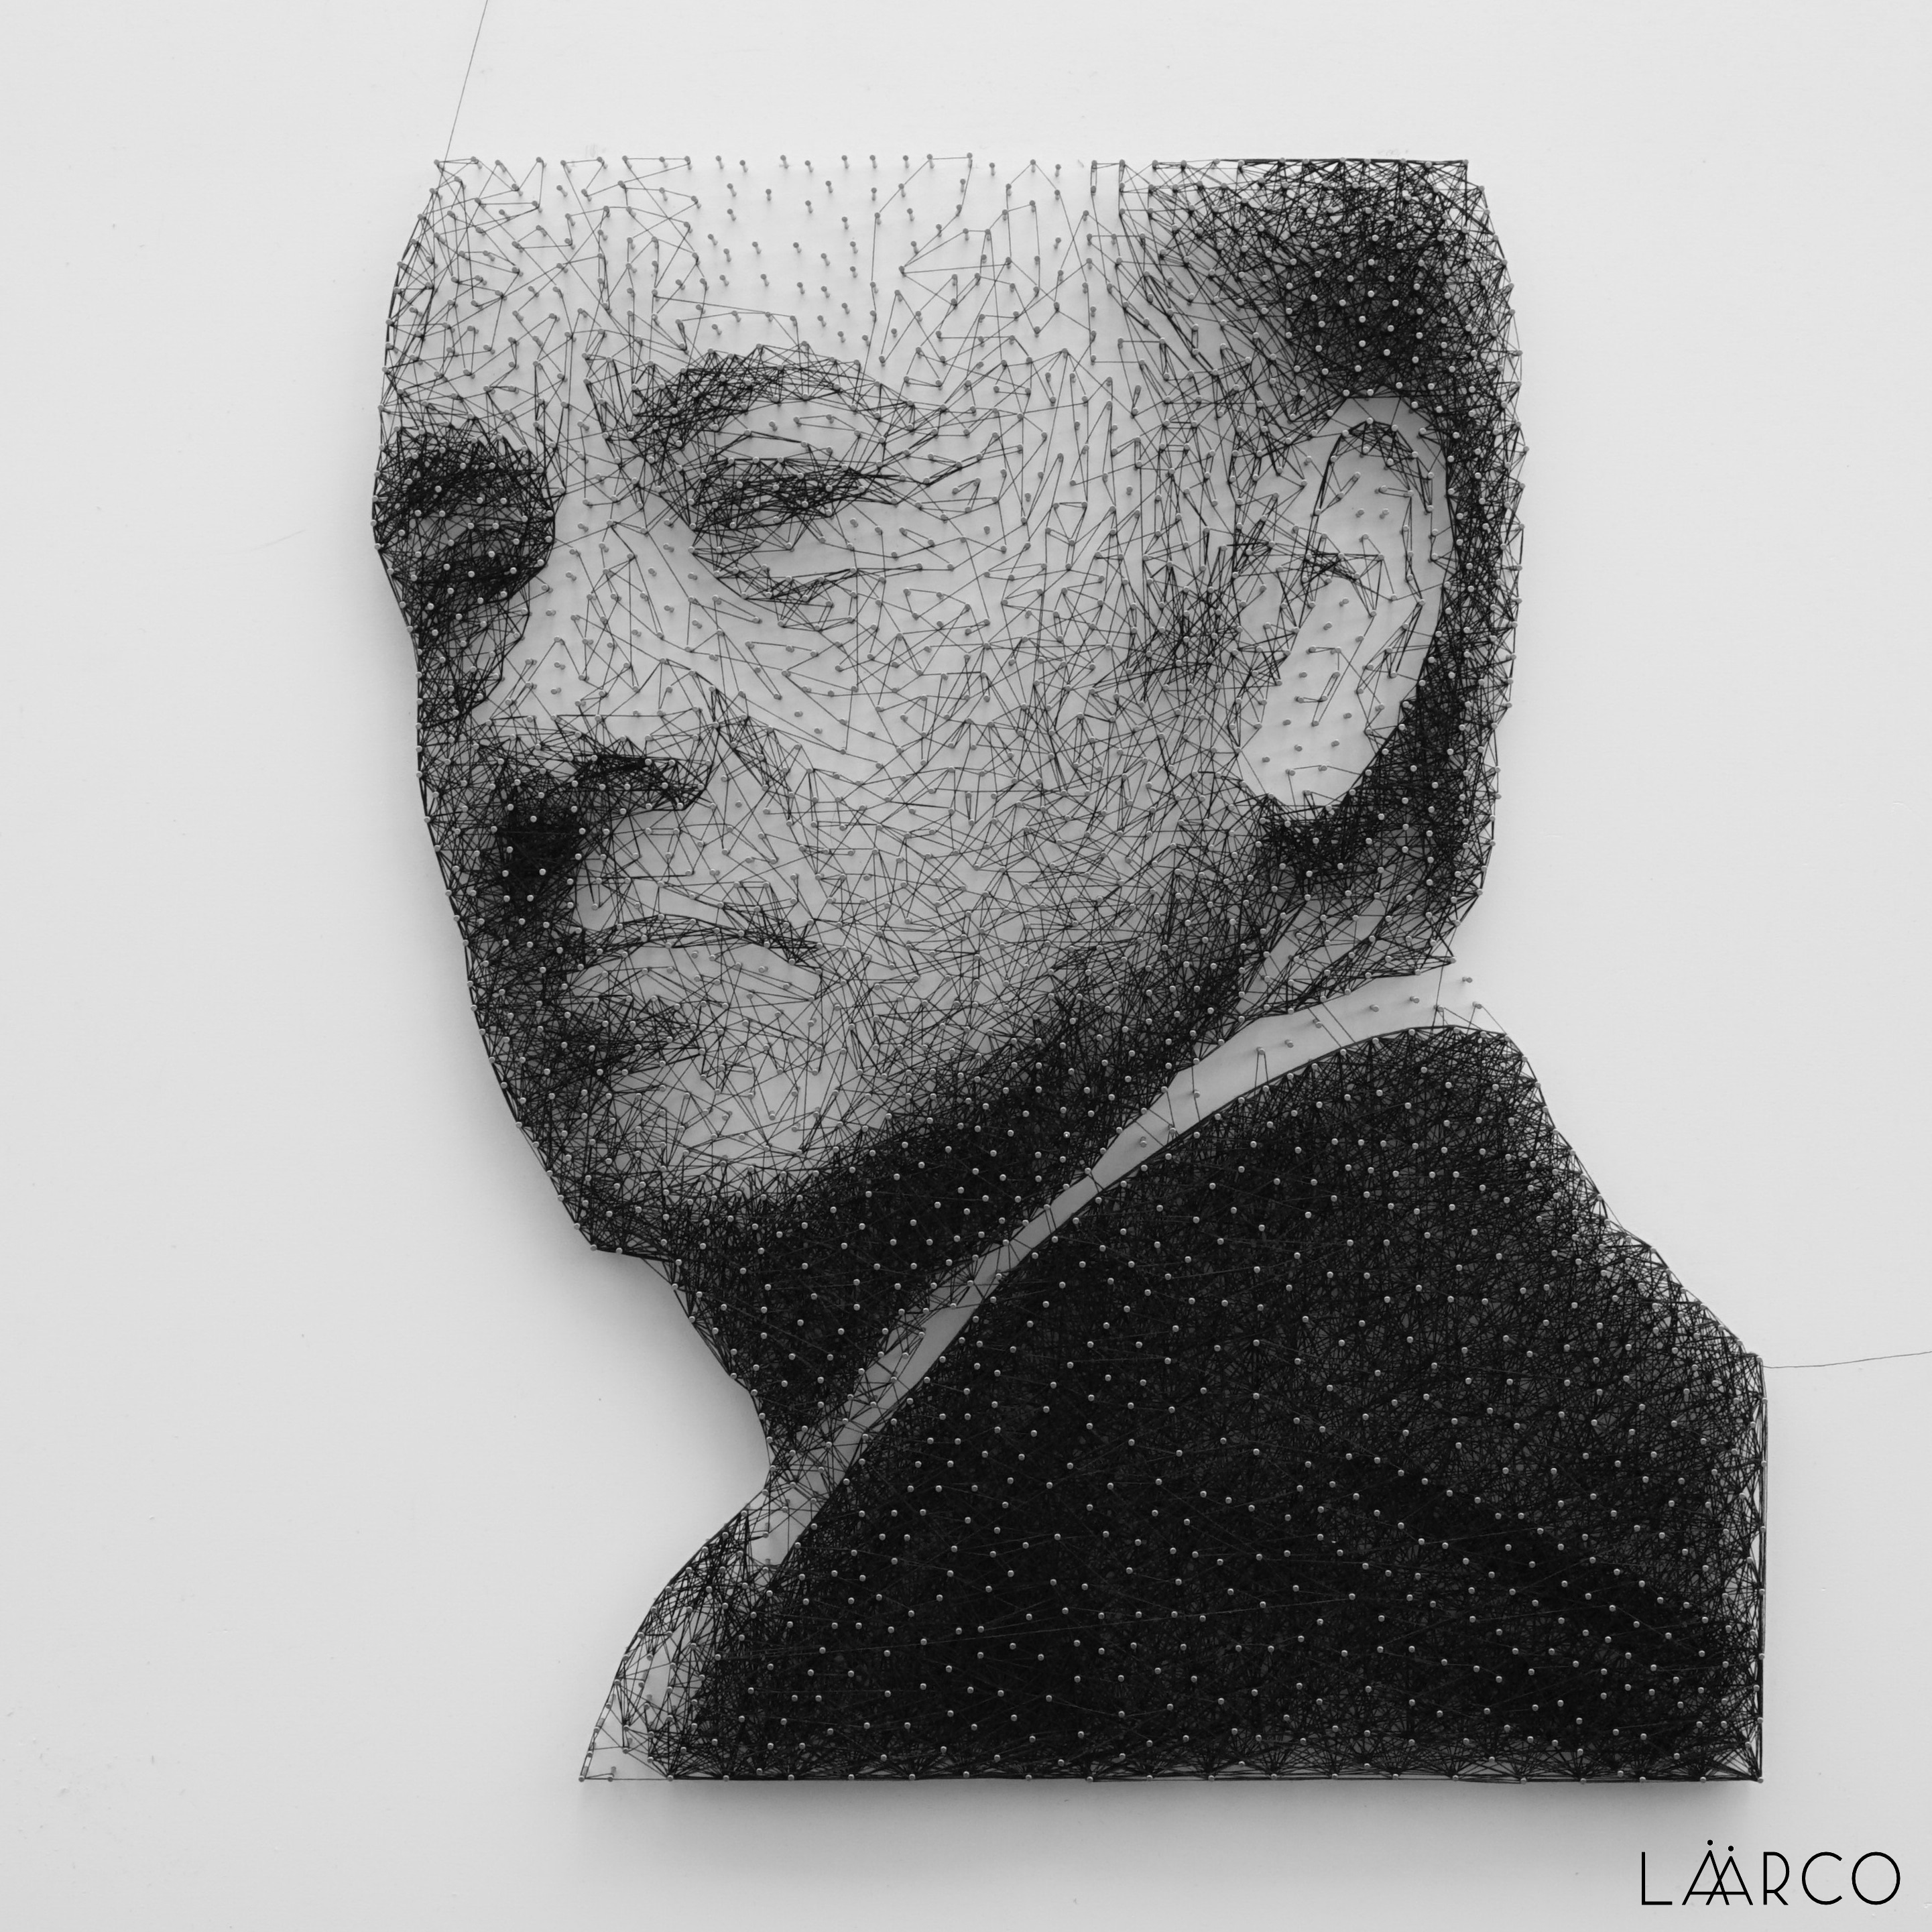 Frank Underwood (Kevin Spacey) - House of Cards